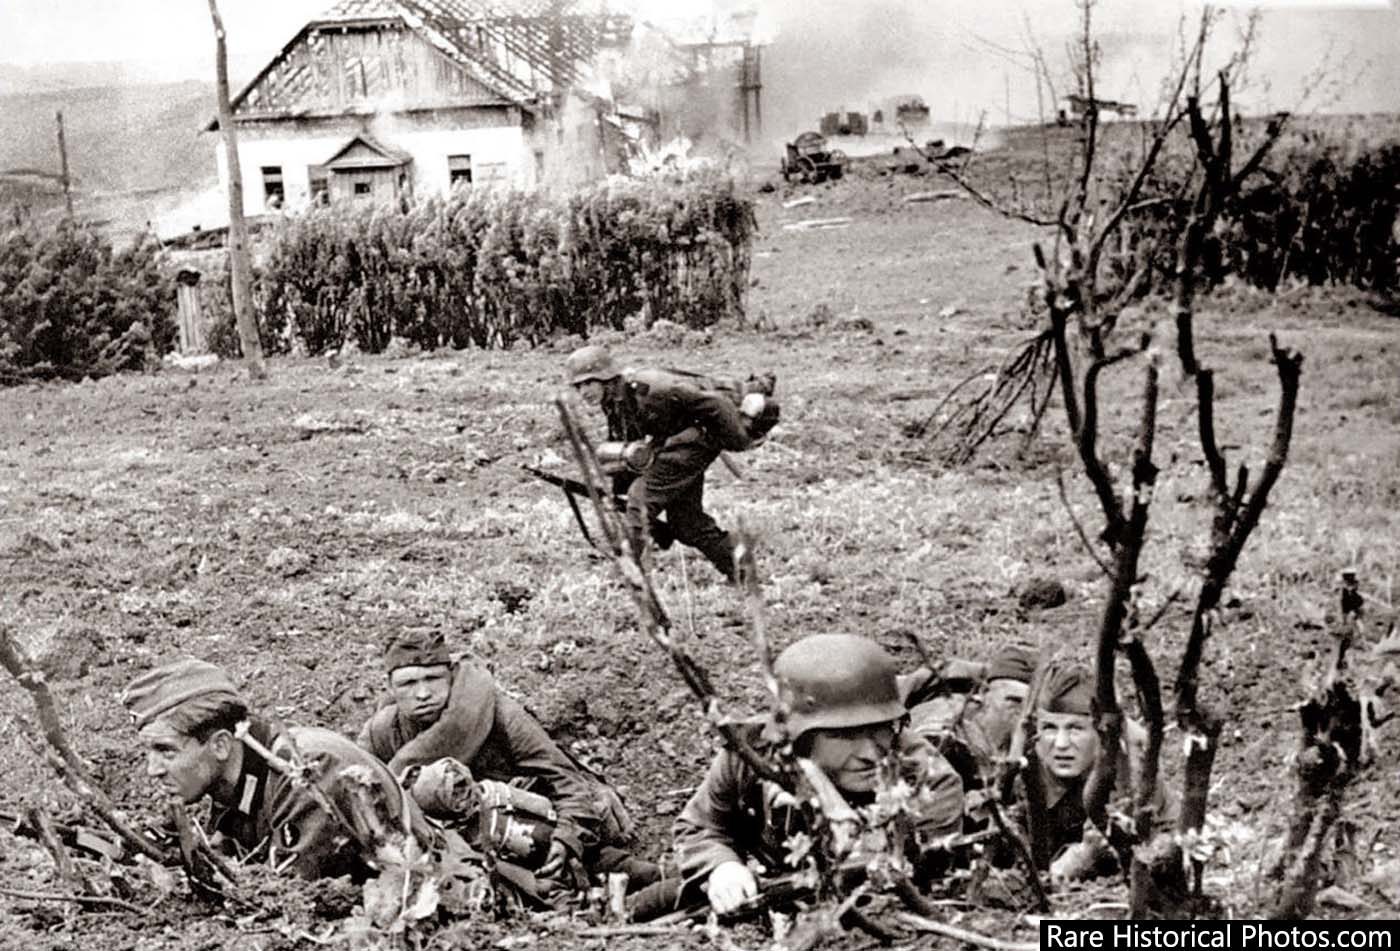 Outskirts of Stalingrad. Germans taking cover.